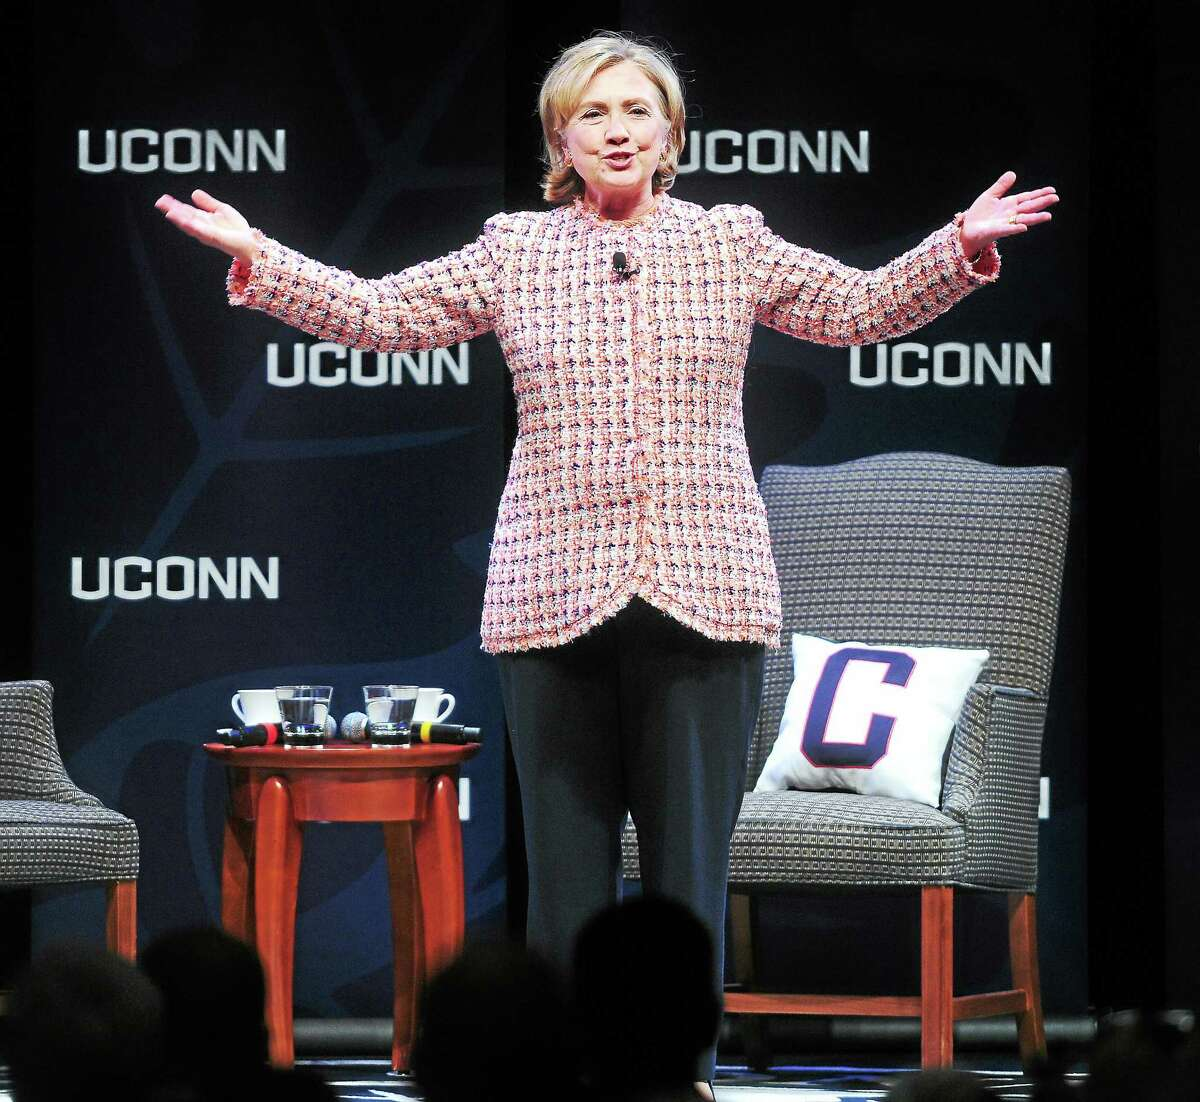 In this April 23, 2014 file photo, former Secretary of State Hillary Clinton speaks at the Edmund Fusco Contemporary Issues Forum at the University of Connecticut